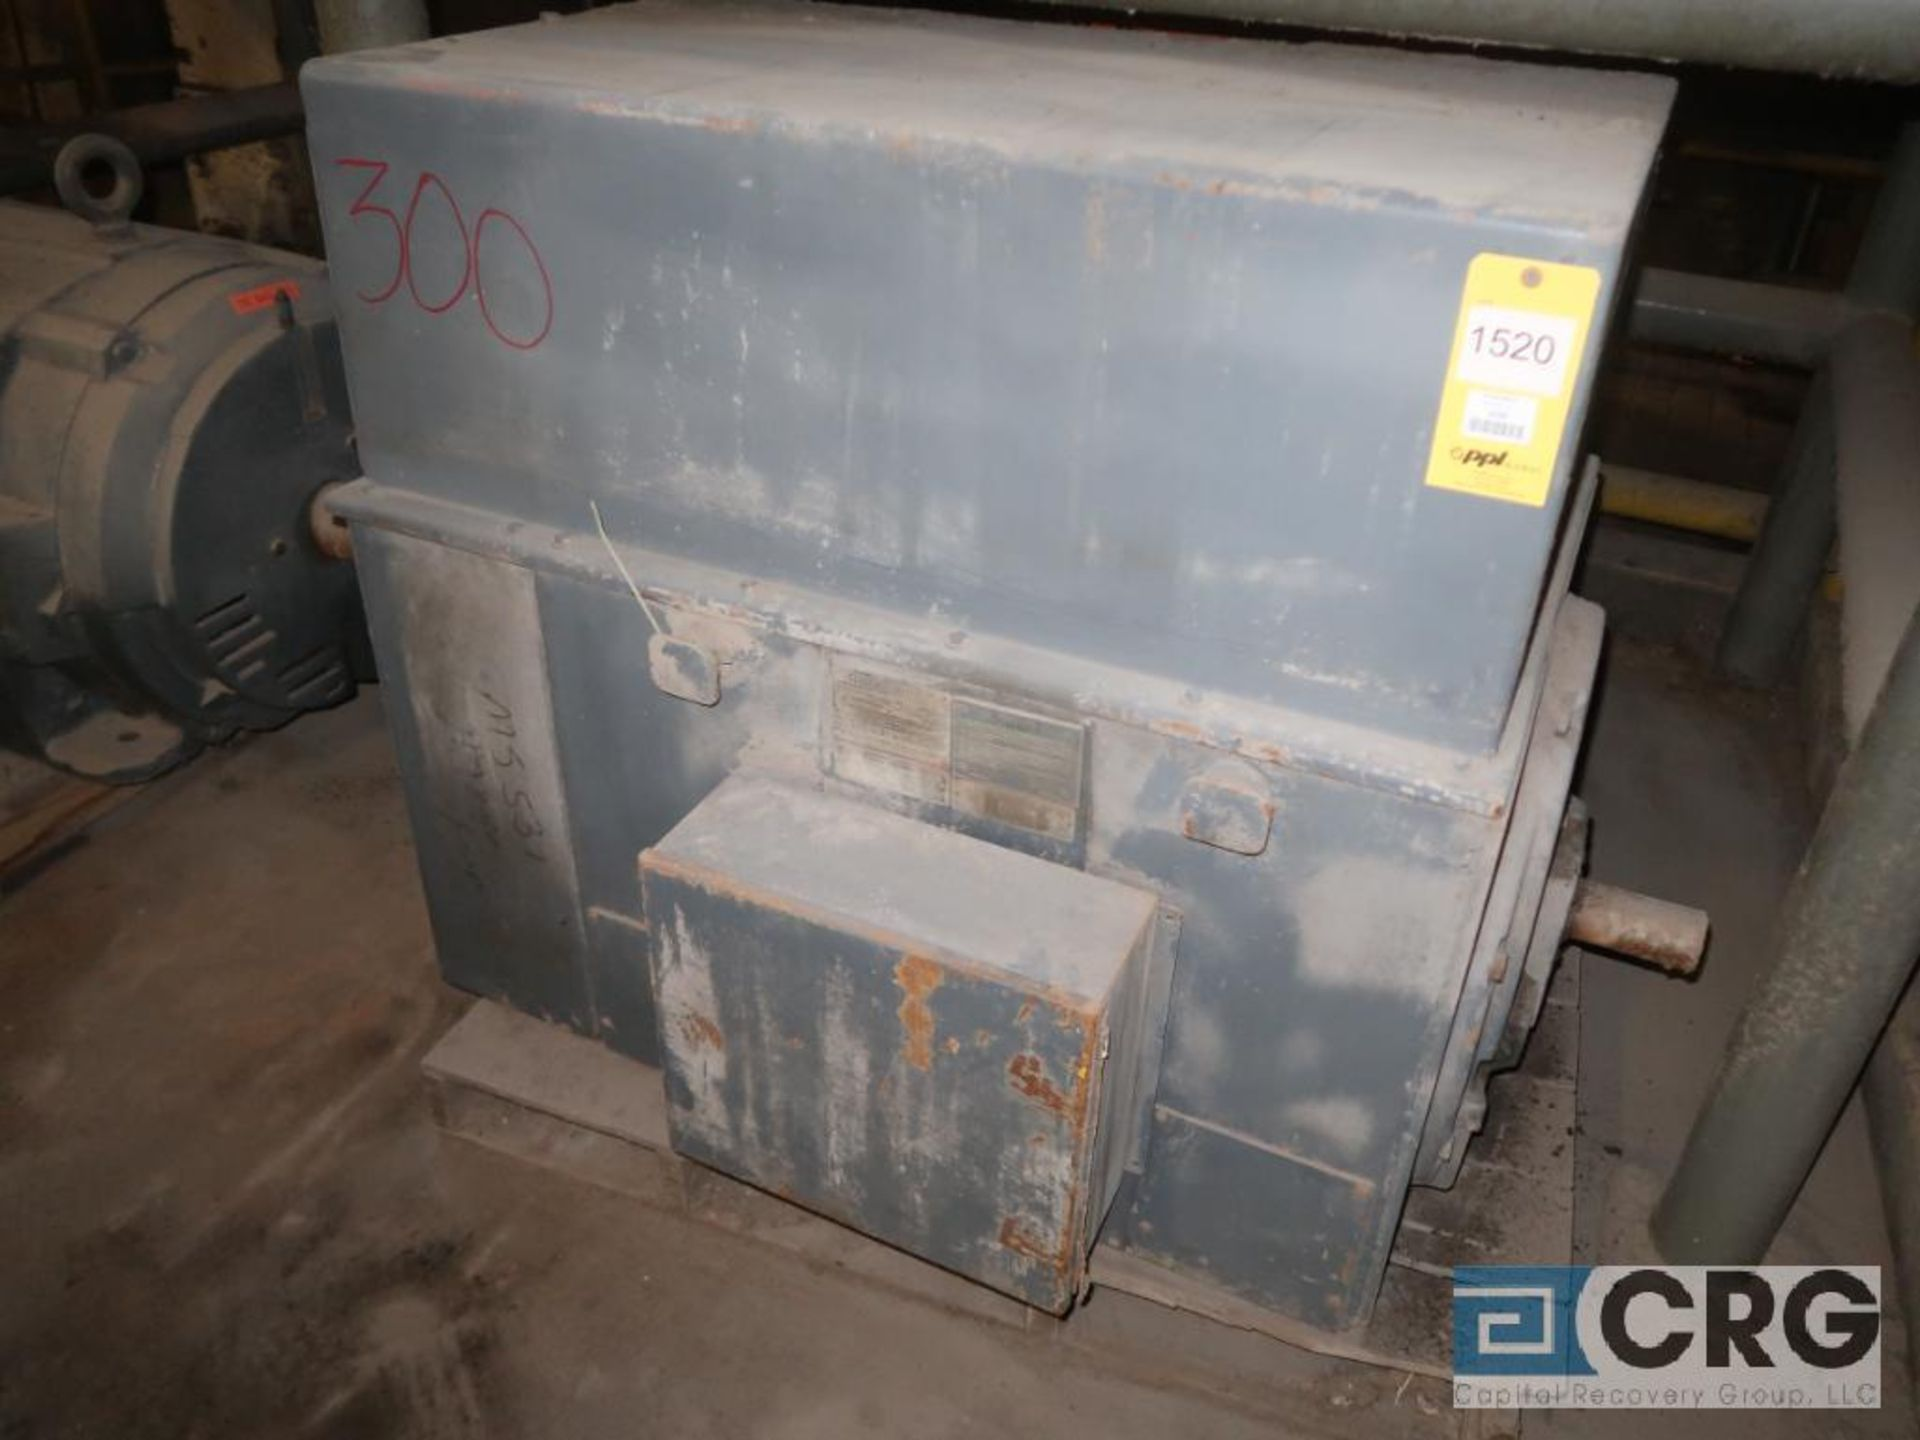 GE motor, 300 HP, 3,570 RPM, 2,300 volts, 8188S frame, equipment #MS531 (496 Dock Area) - Image 2 of 3